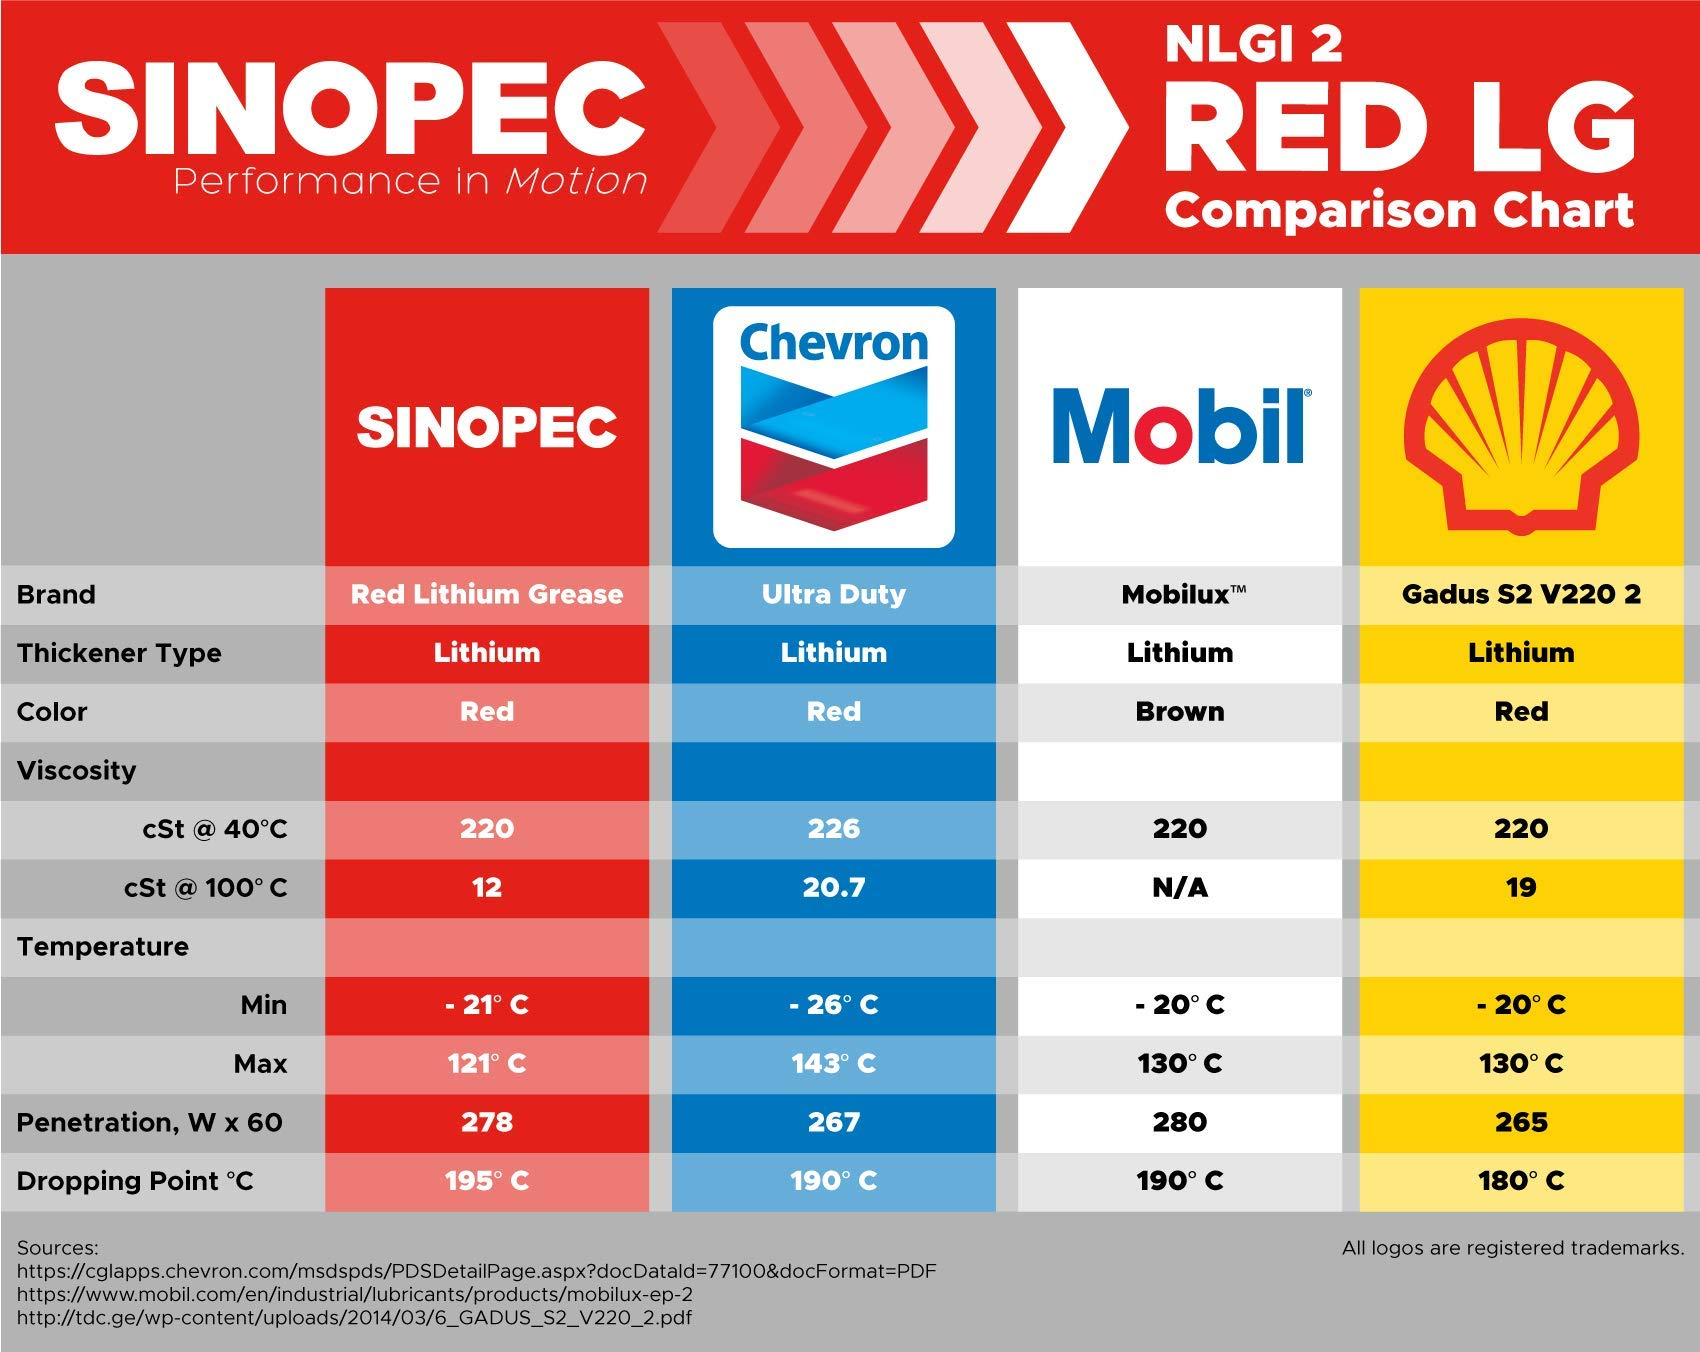 Sinopec Red Multipurpose Lithium Grease #2-35LB. (5 Gallon) Pail (12) by Sinopec (Image #2)